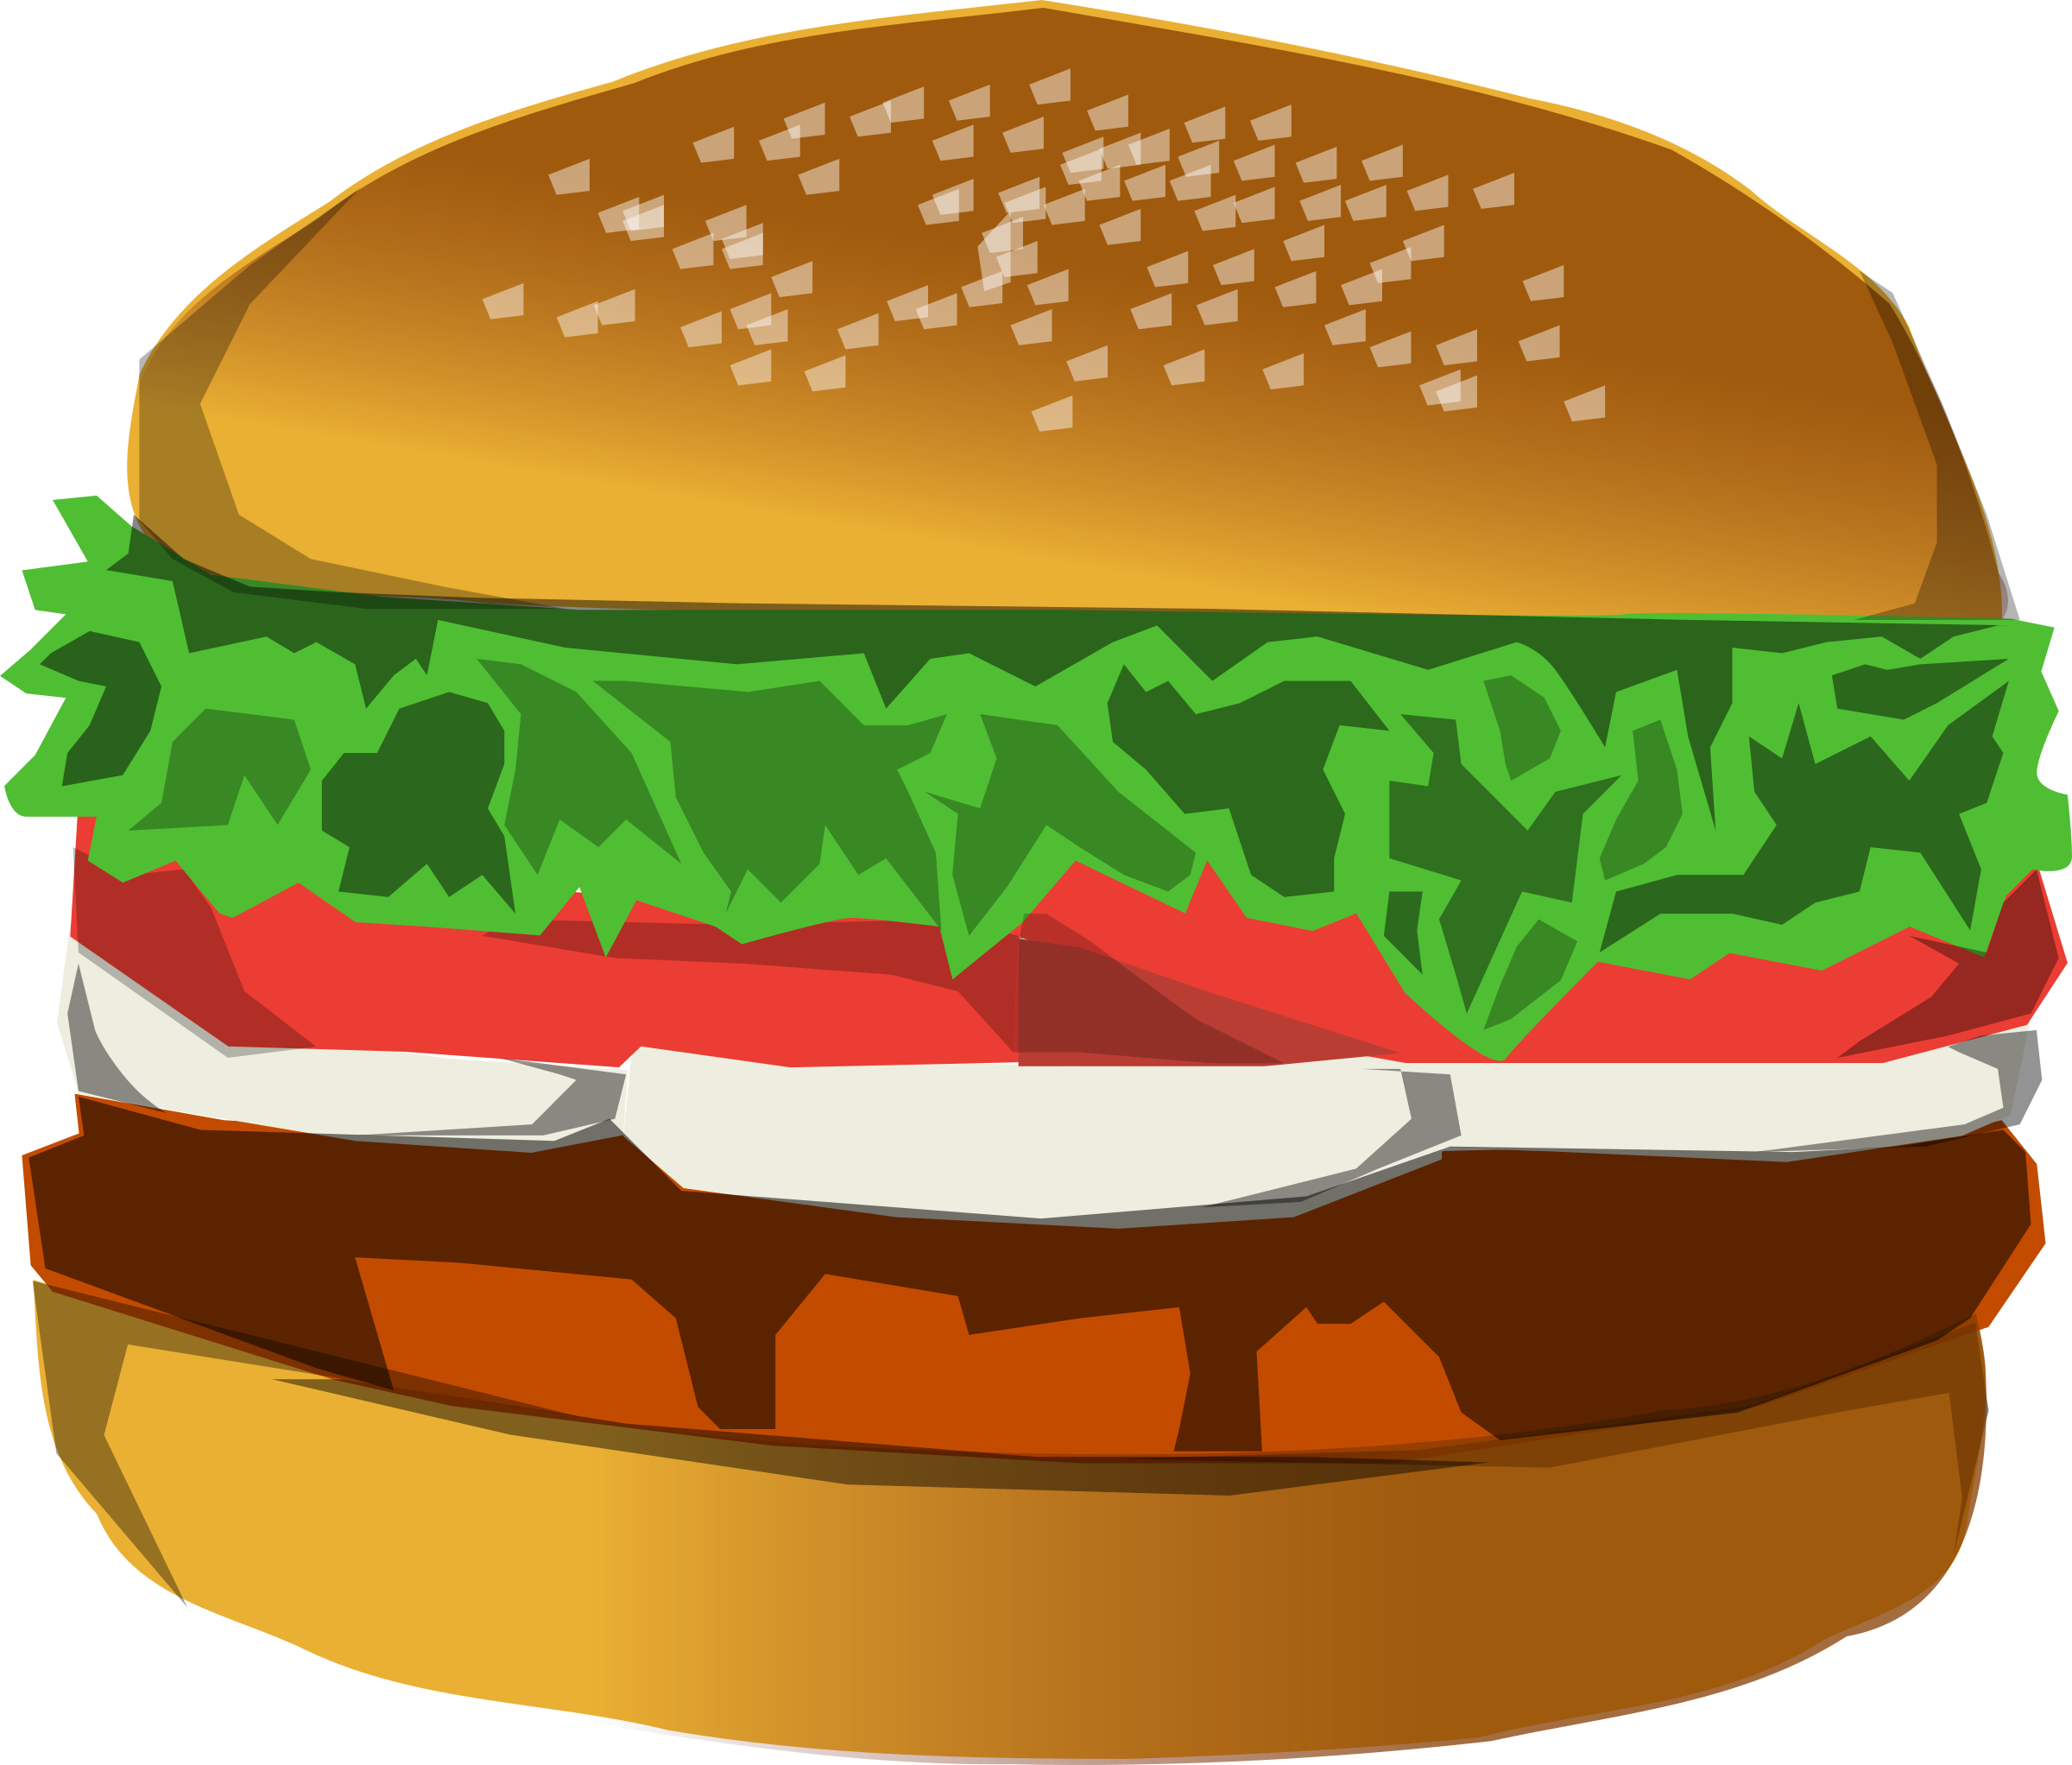 Burger by Anonymous